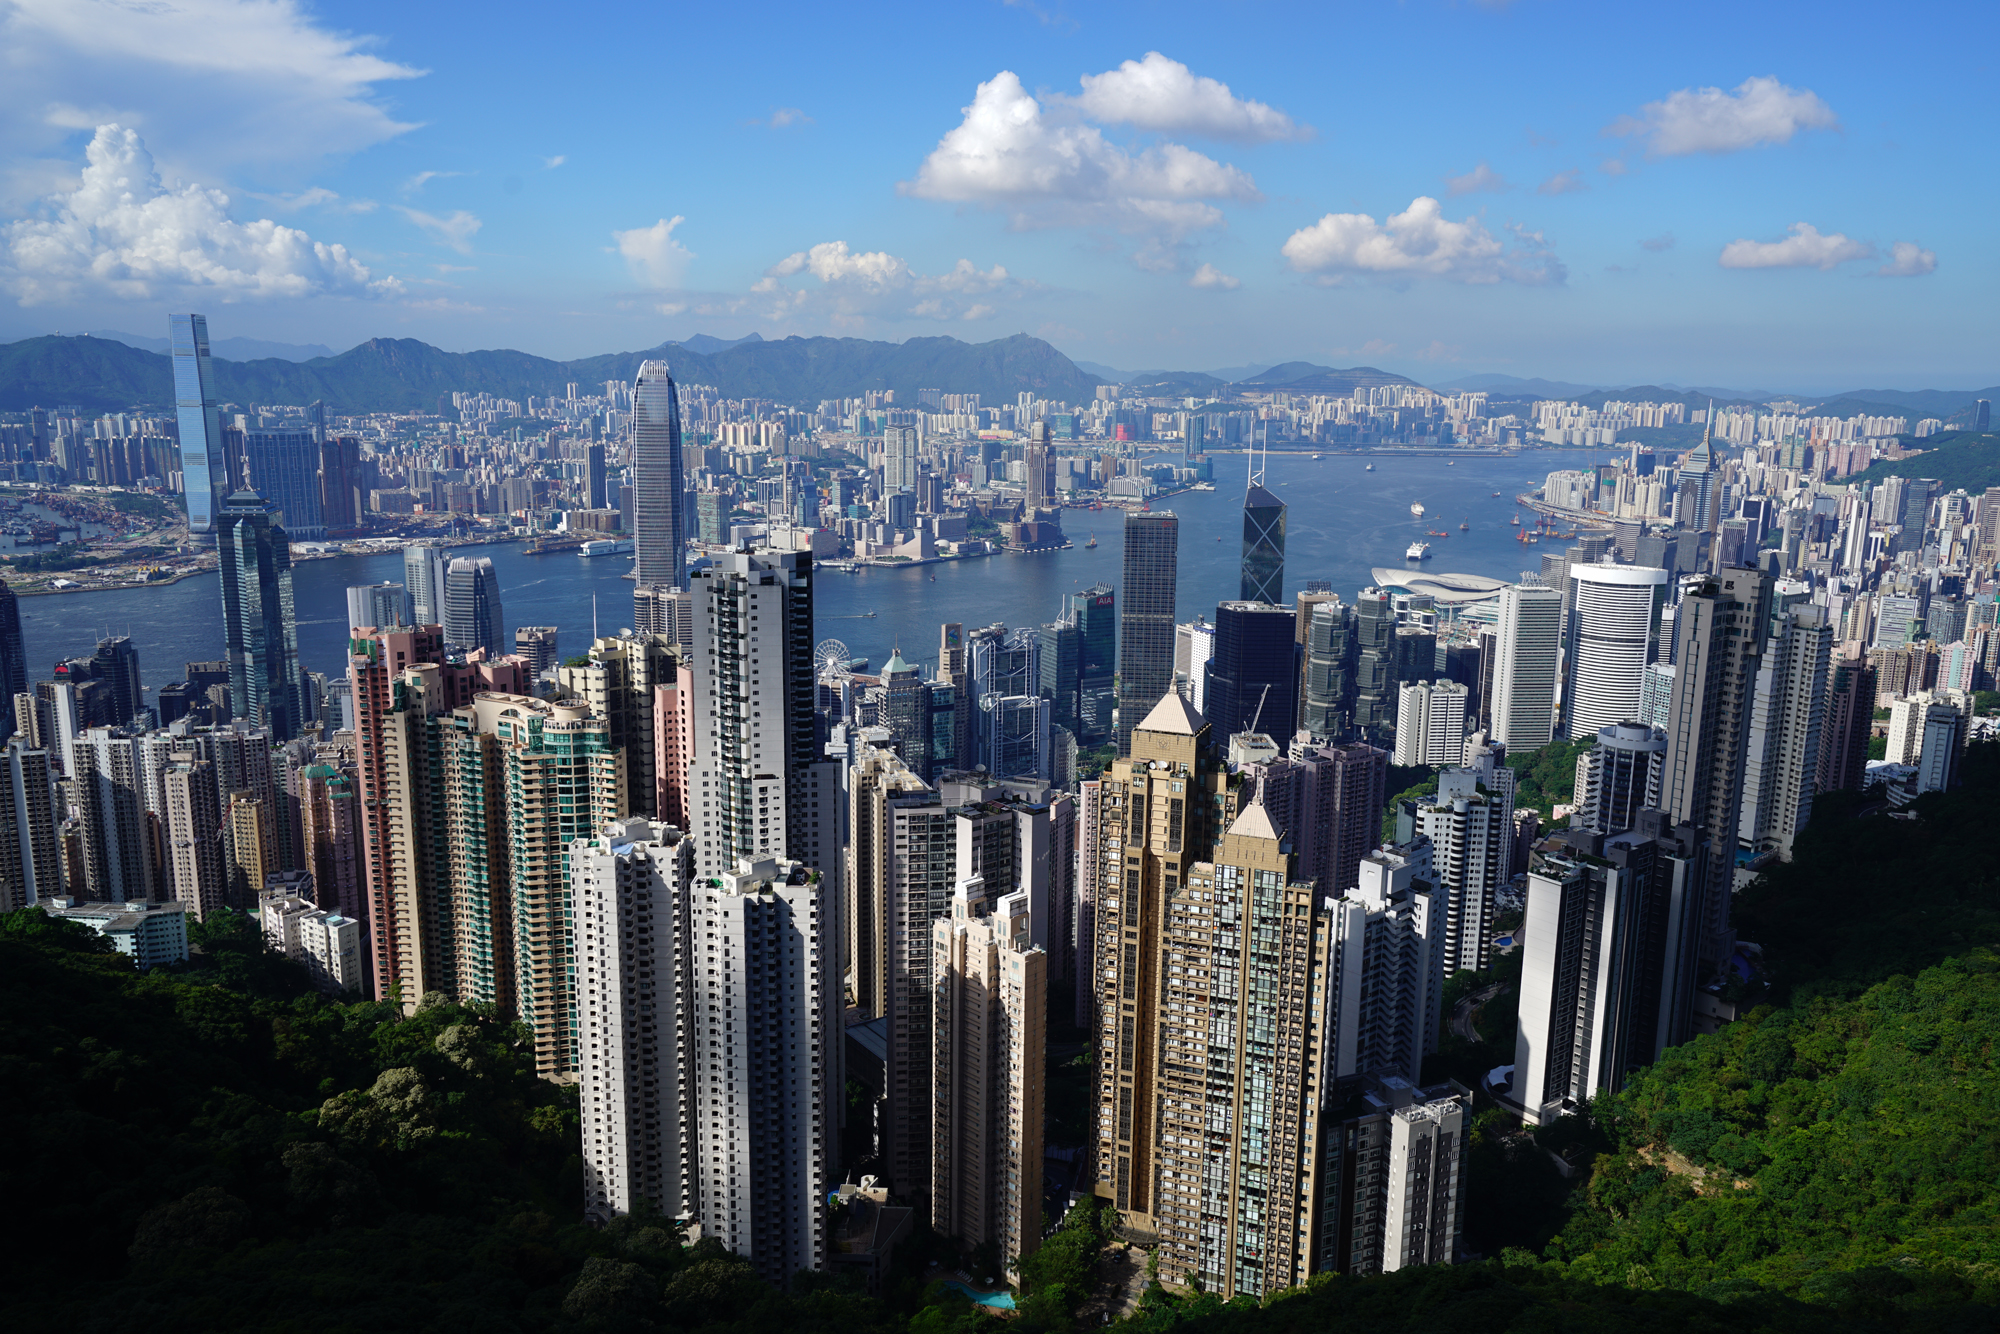 An aerial view of Hong Kong at mid-day from Victoria Peak showing a group extremely tall skyscrapers, Photo courtesy of the Information Services Department of HKSARG